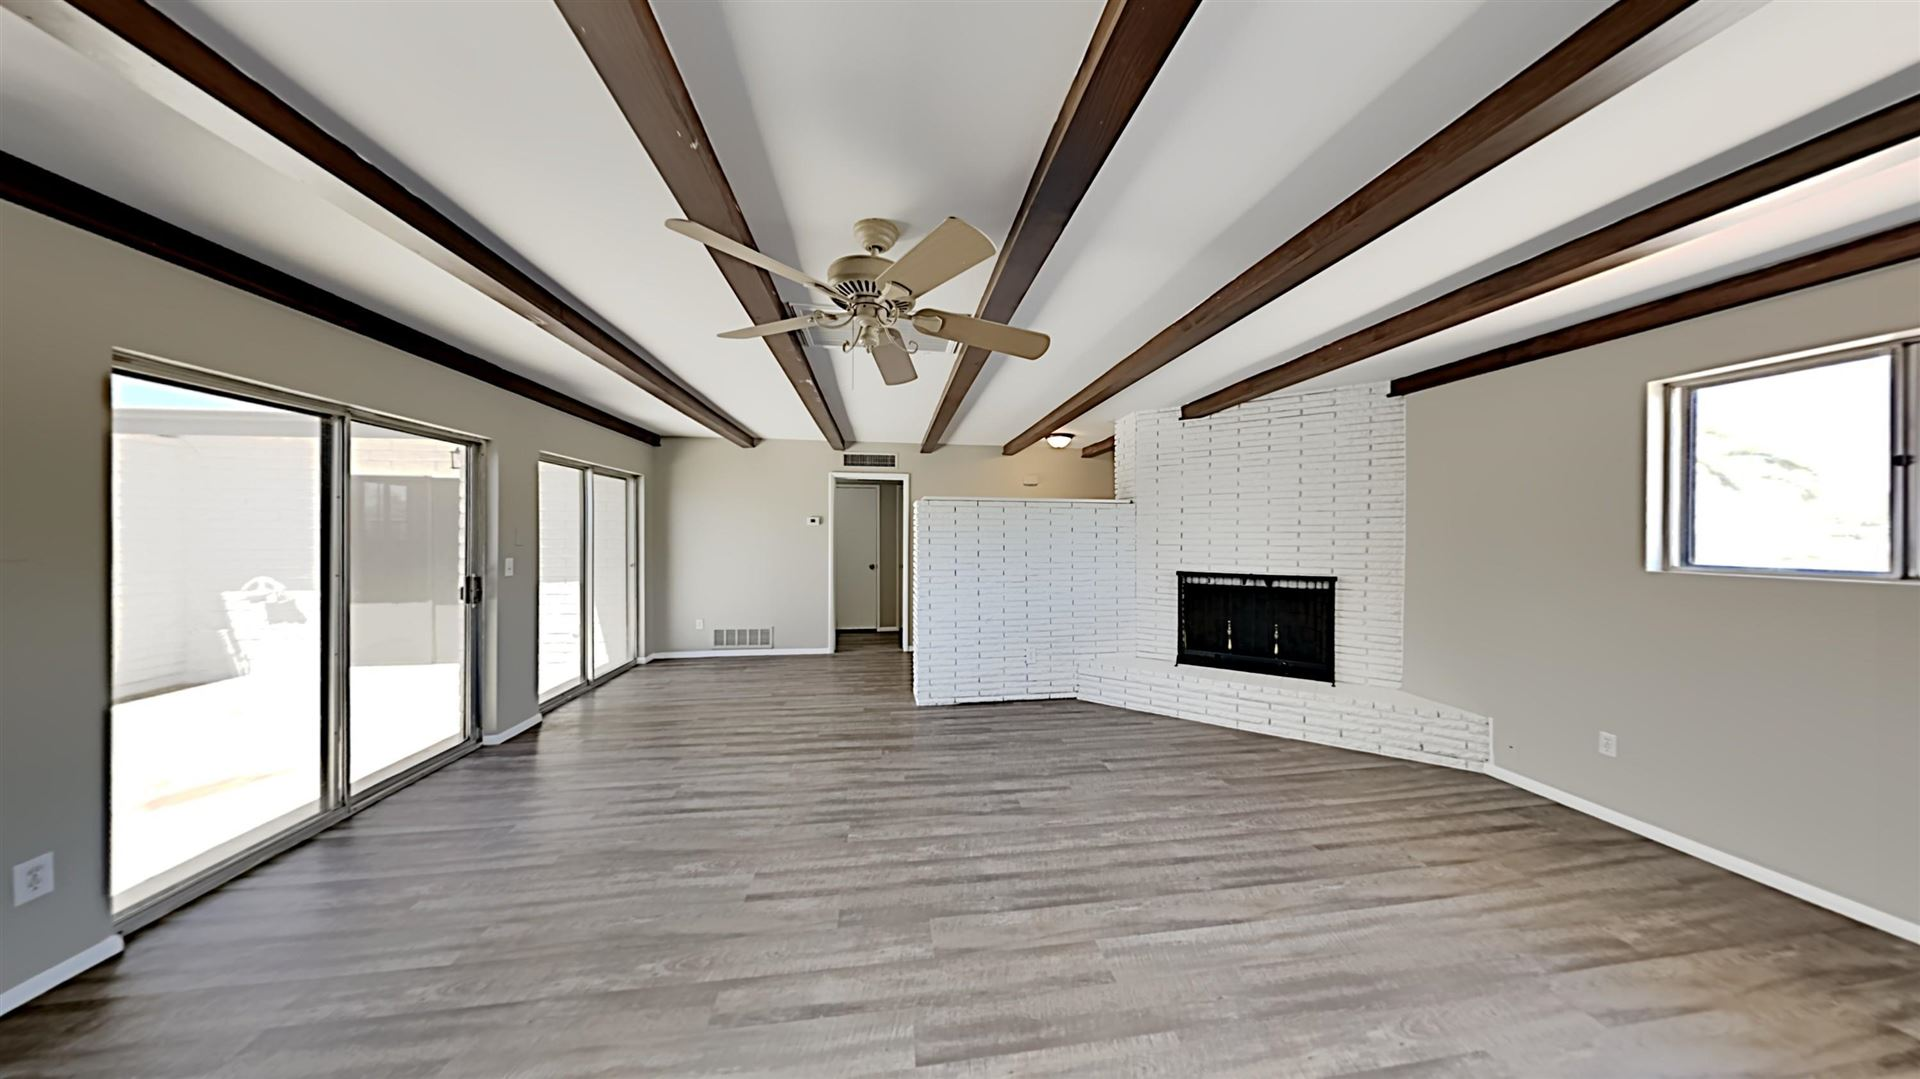 Photo of 11604 N 114TH Avenue, Youngtown, AZ 85363 (MLS # 6230492)